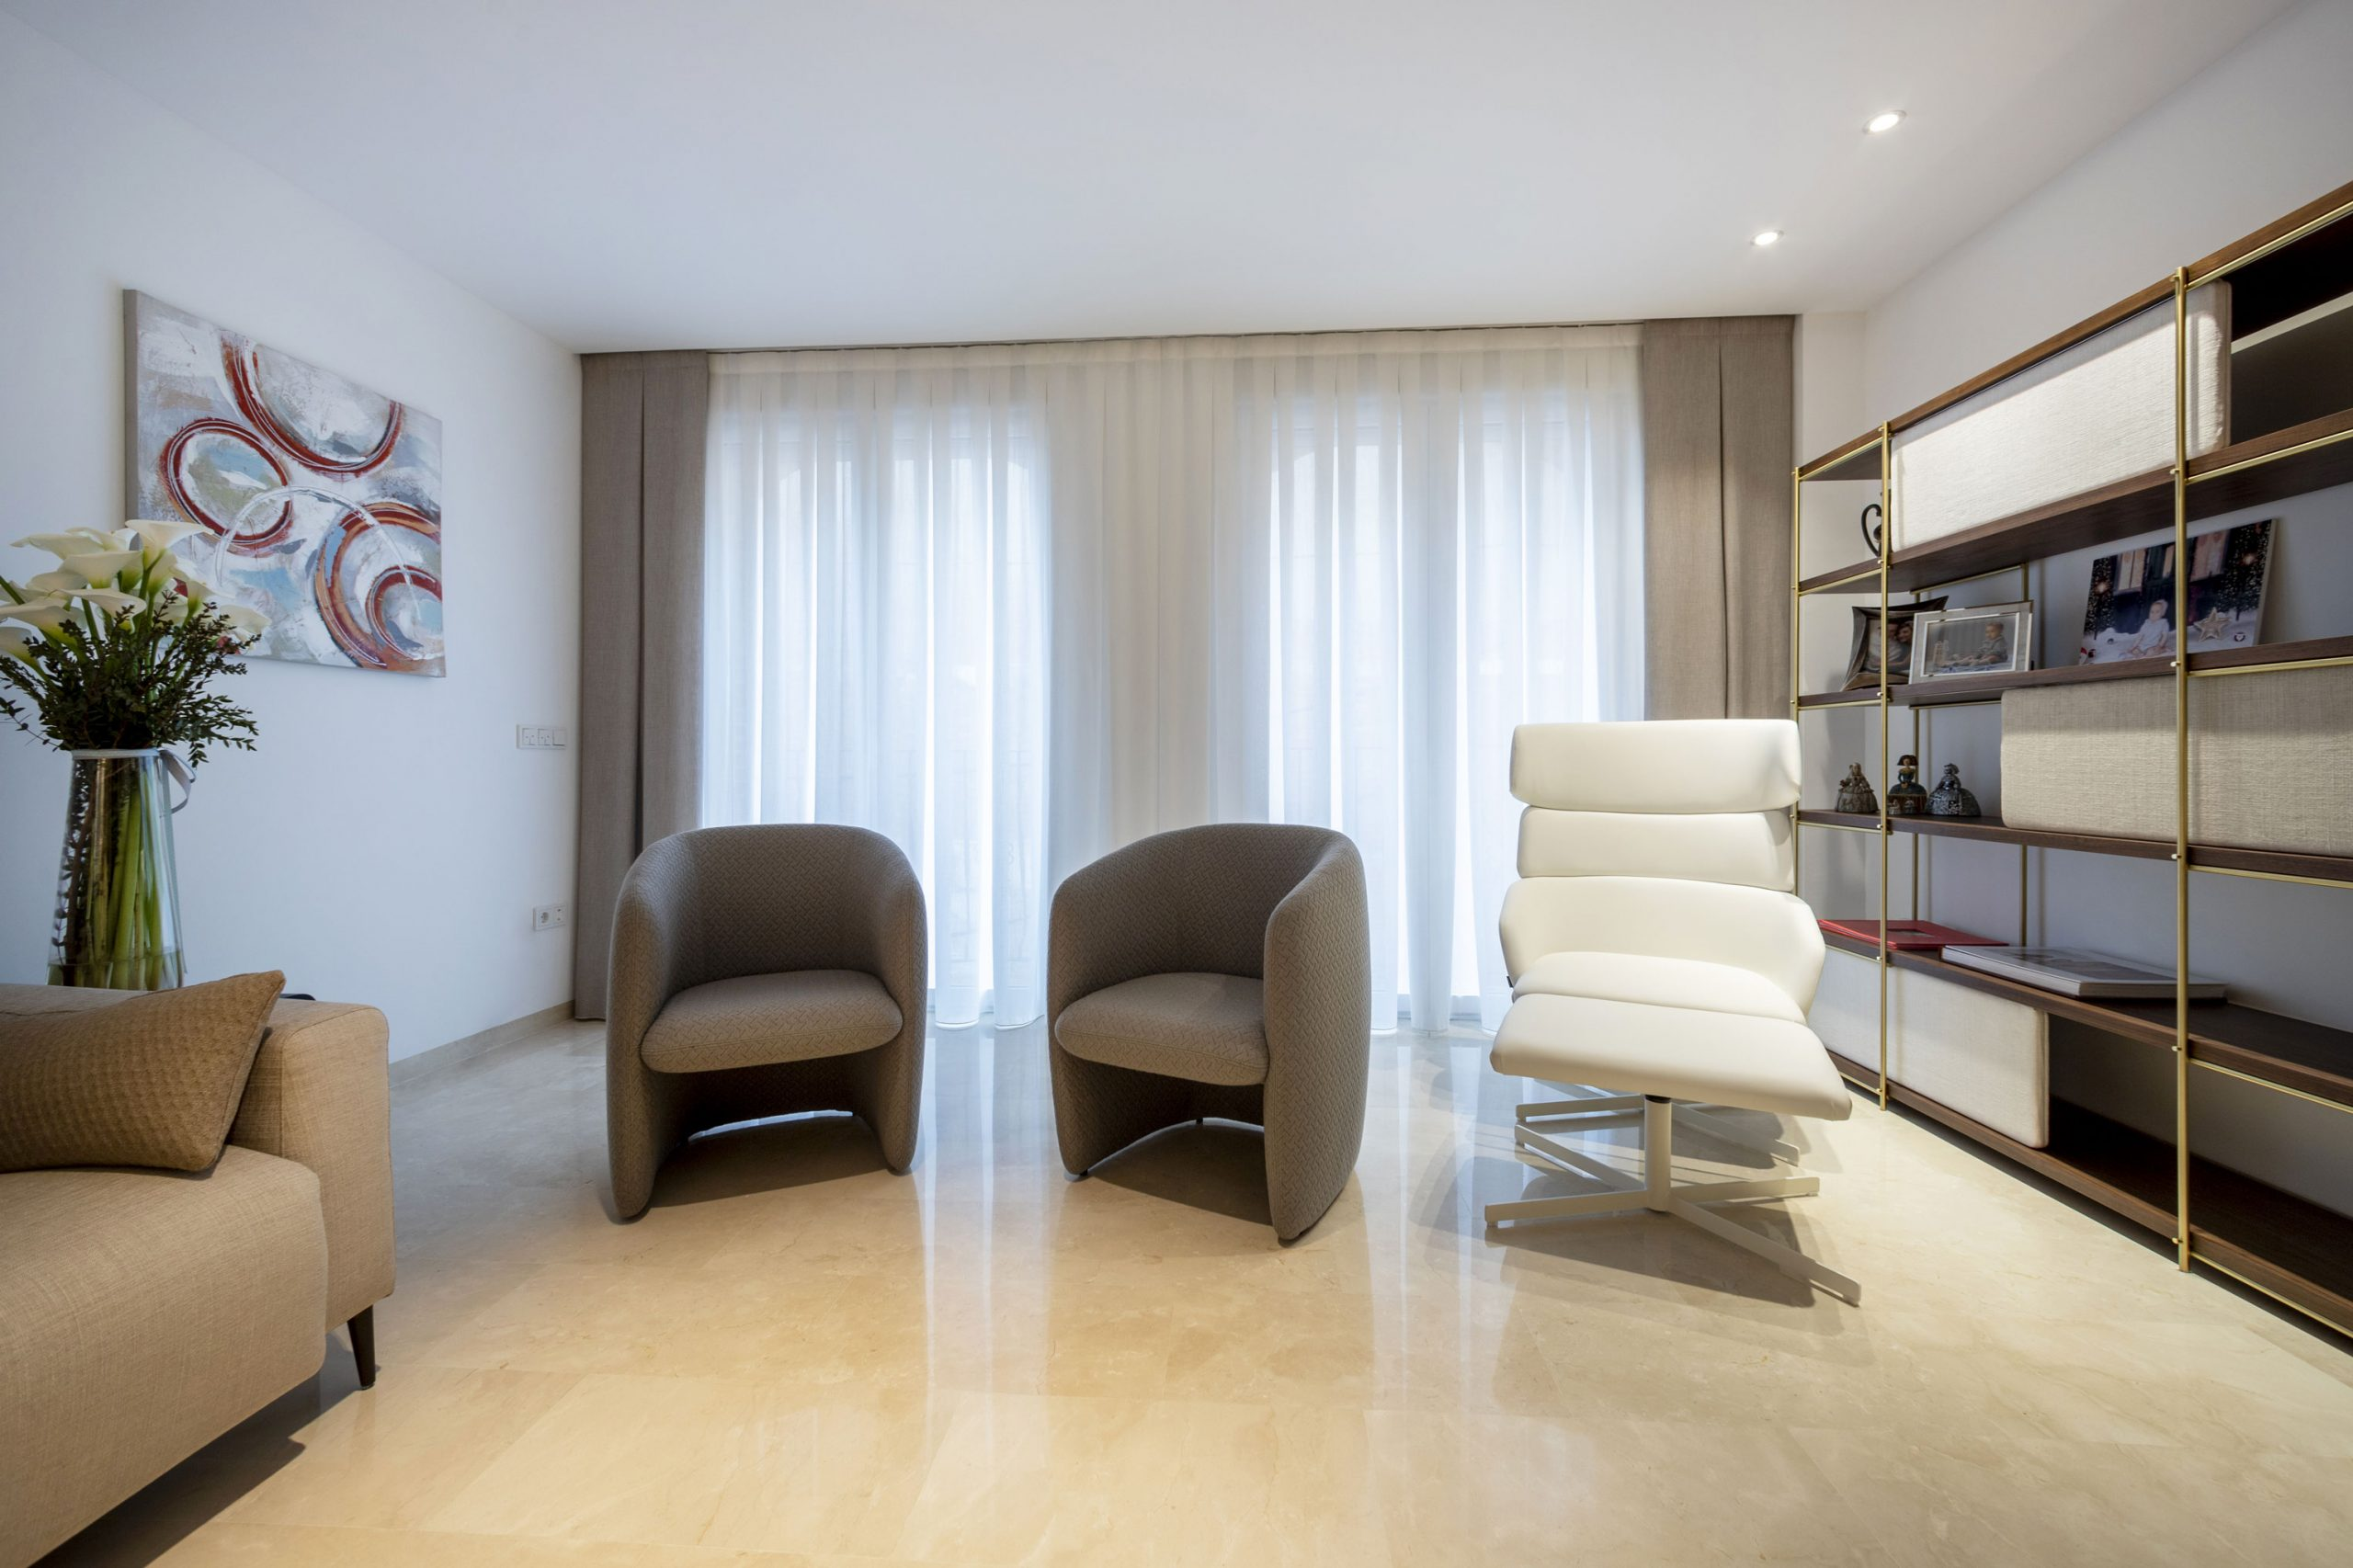 Light and airy interior design by Miguel Calvo